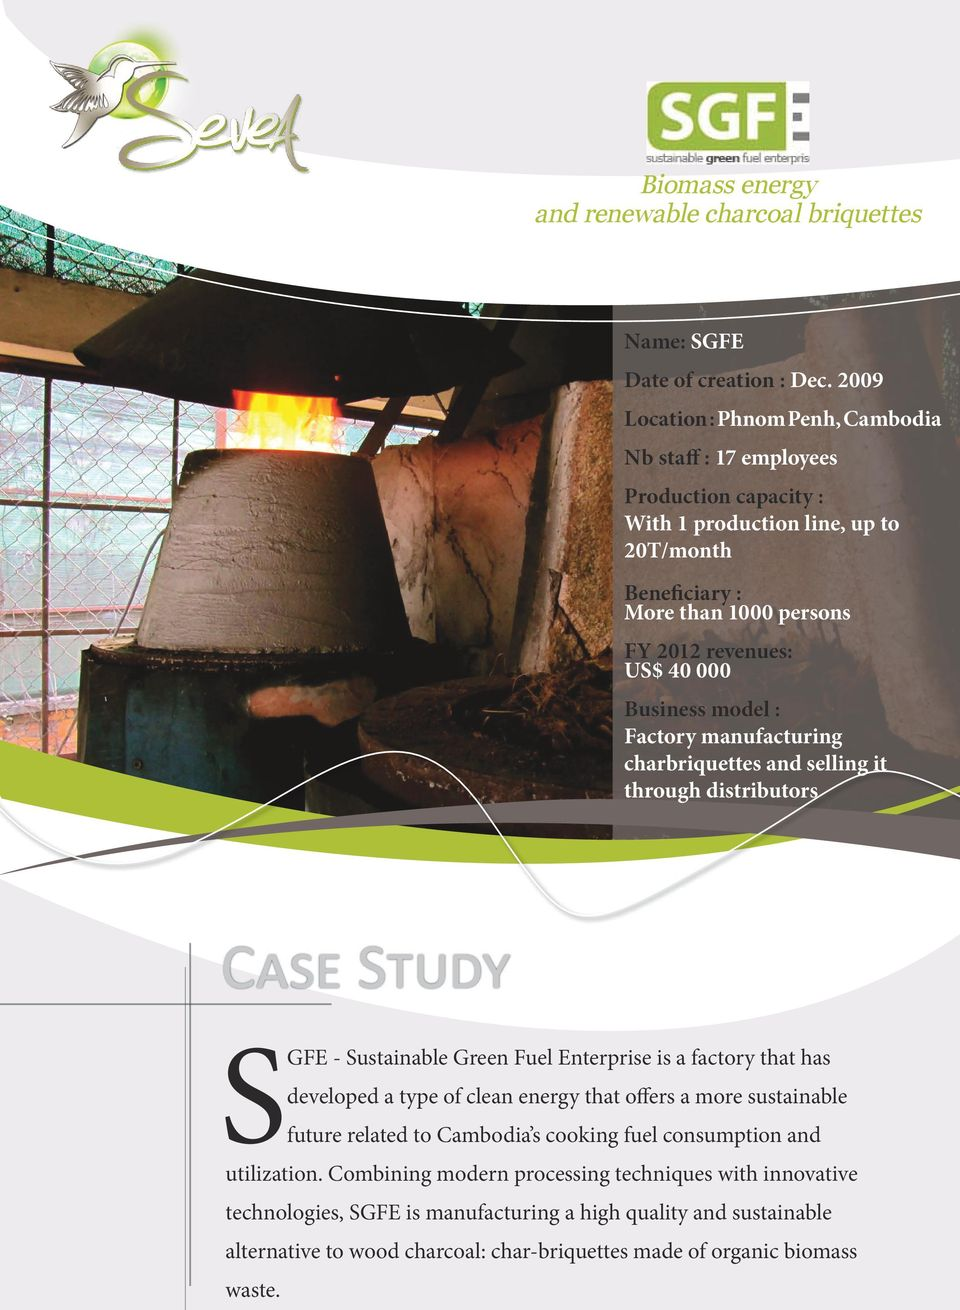 model : Factory manufacturing charbriquettes and selling it through distributors Case Study SGFE - Sustainable Green Fuel Enterprise is a factory that has developed a type of clean energy that offers